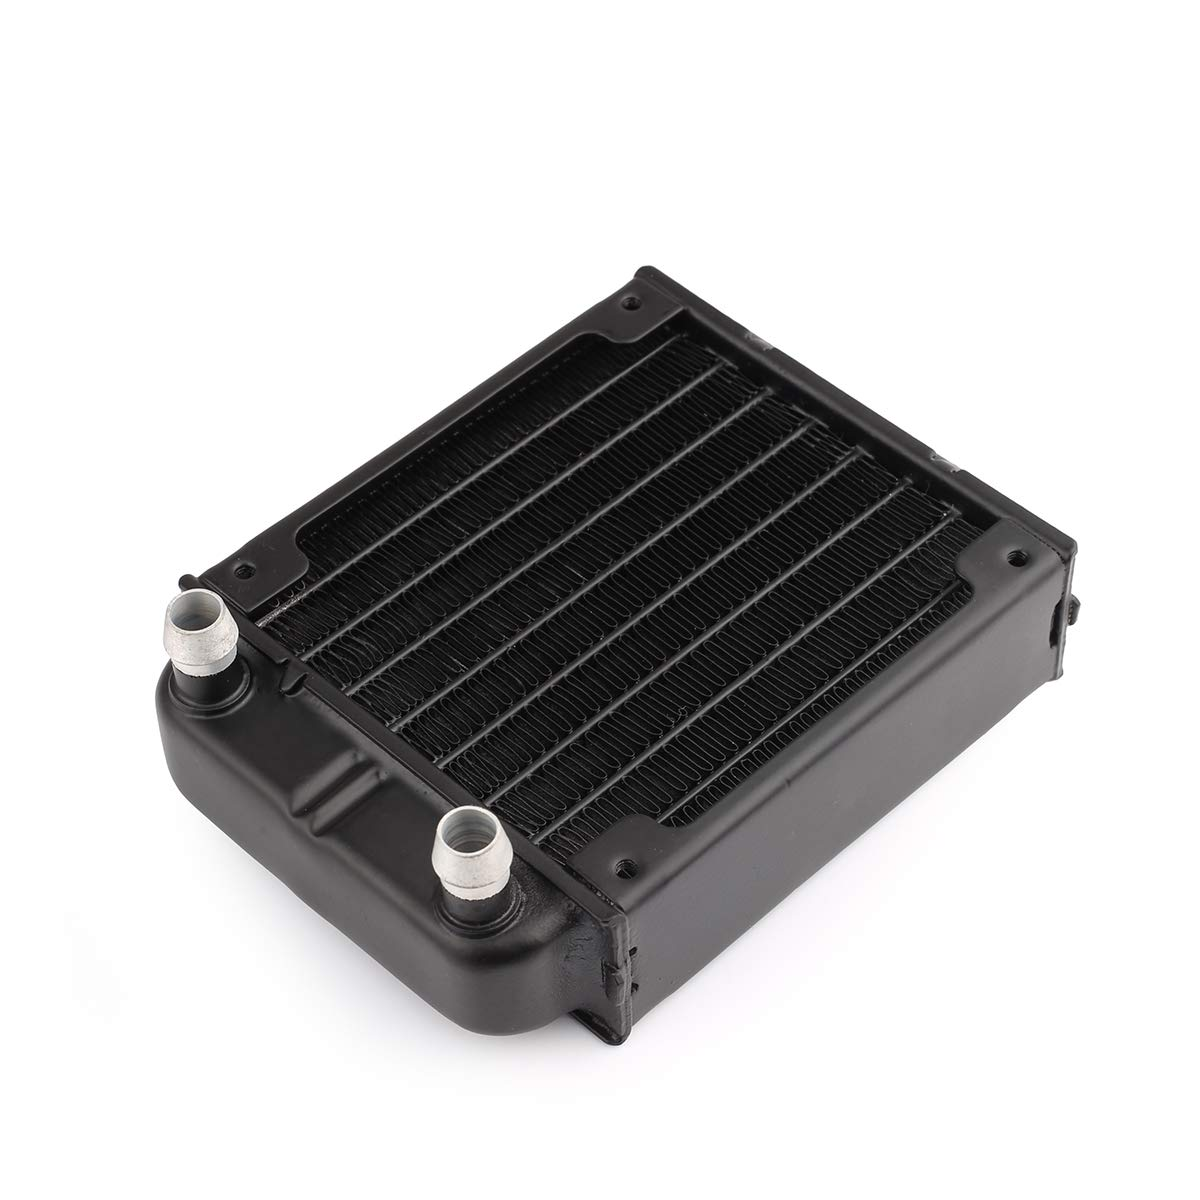 Clyxgs 8 Pipe Aluminum Heat Exchanger Cooling Water Drain Water Cooling Radiator Water Cooling Row with Radiator for PC CPU CO2 Laser Water Cool System Computer 240mm/360mm (80mm)